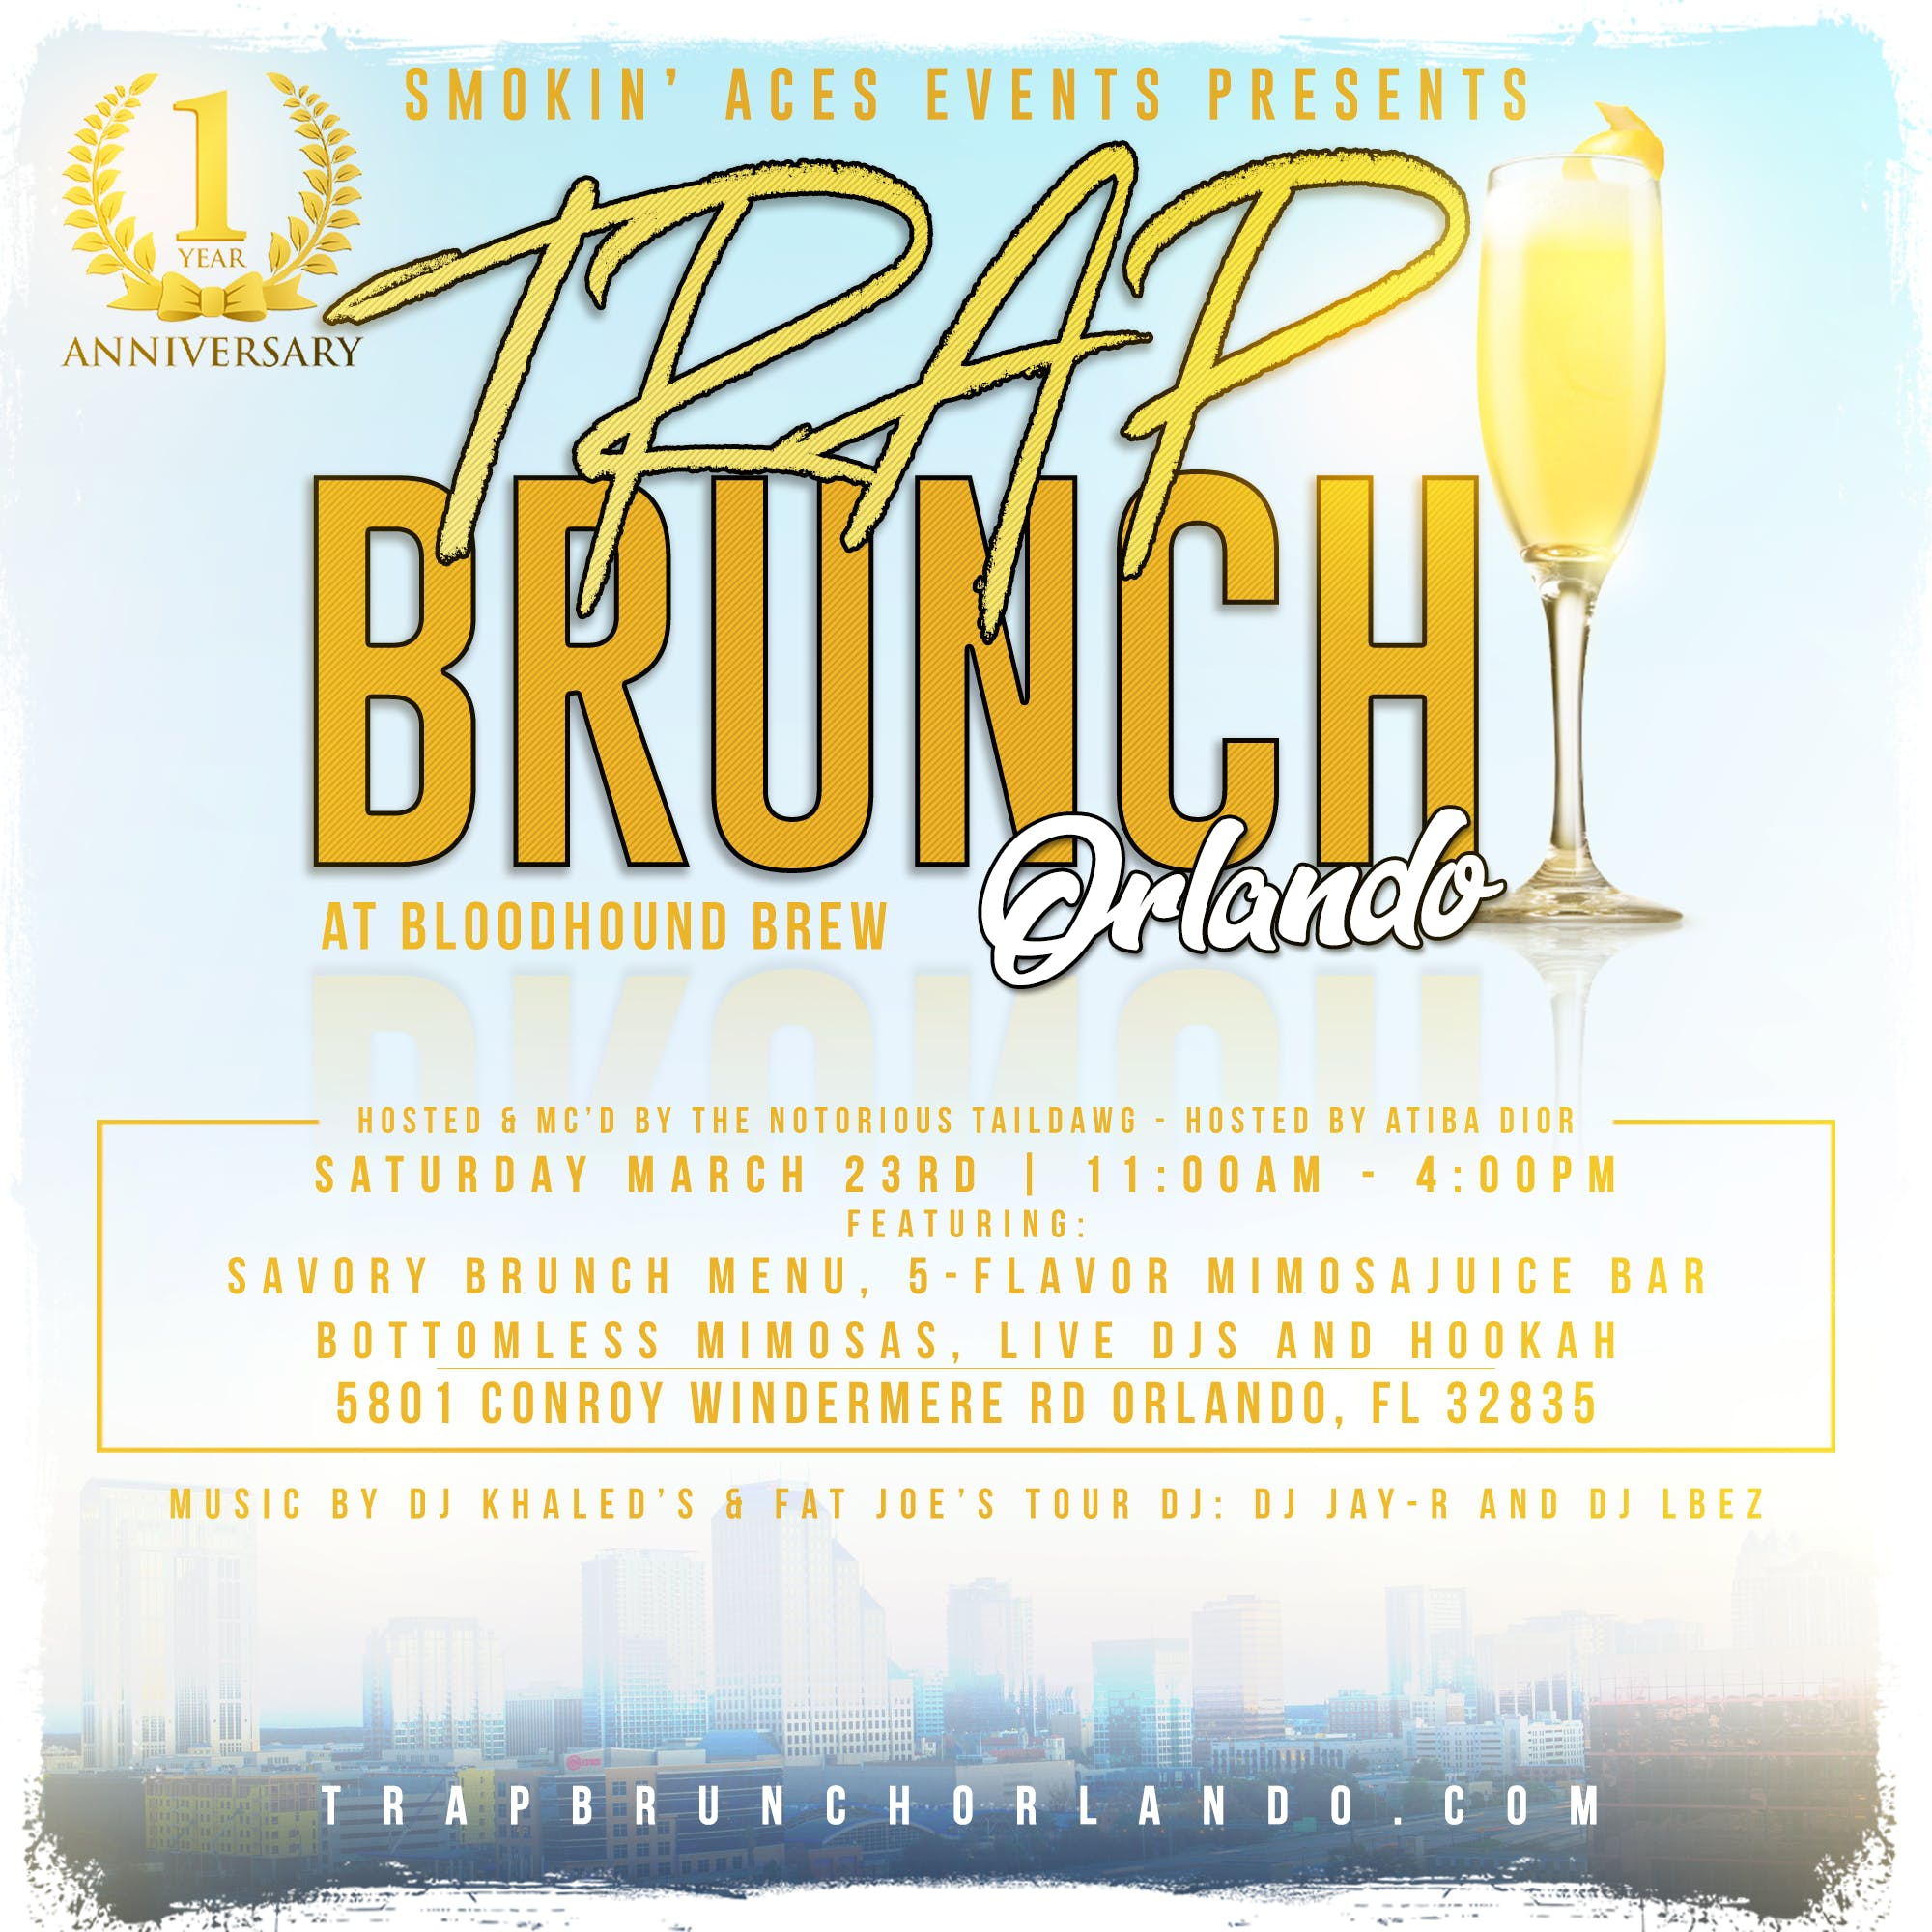 Trap Brunch 1yr Anniversary Celebration @ Bloodhound Brew